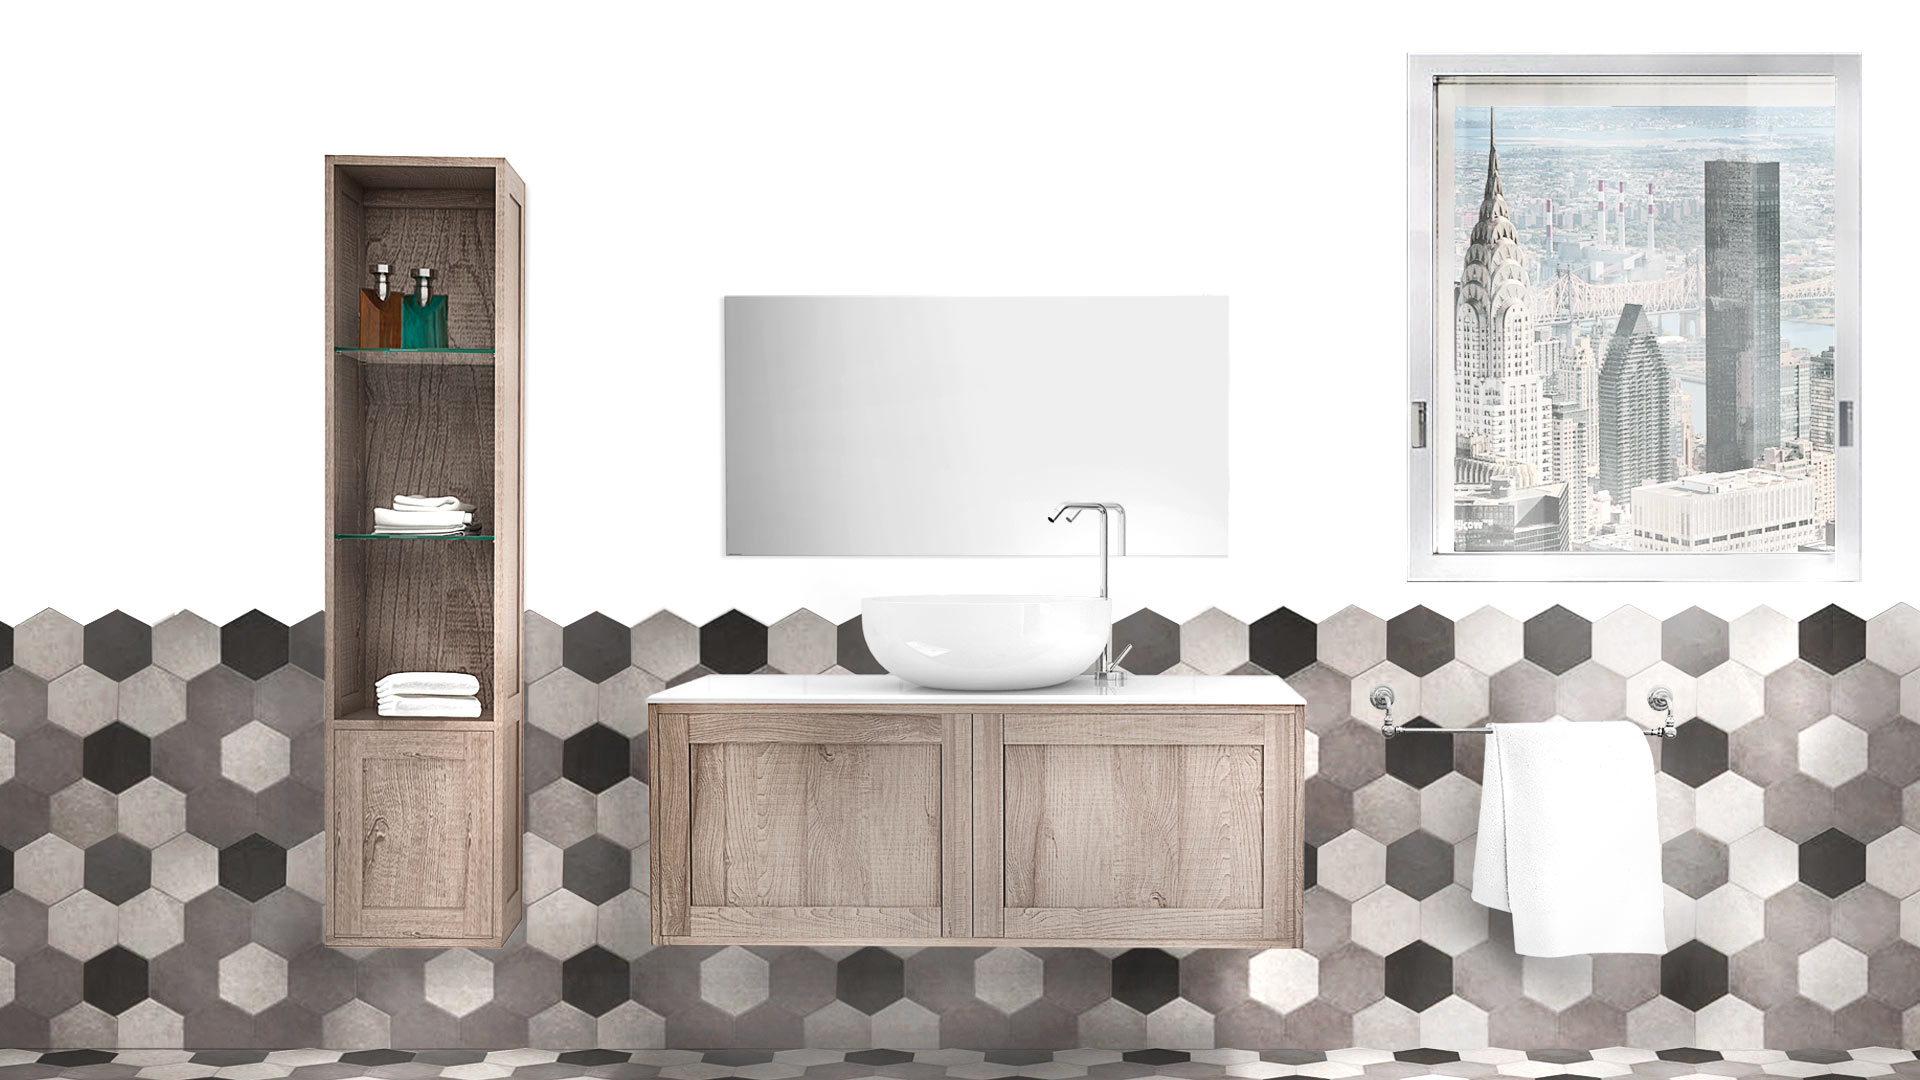 Arredamenti Bagno Design Bathroom And Home Design And Furnishing By Bianchini Capponi